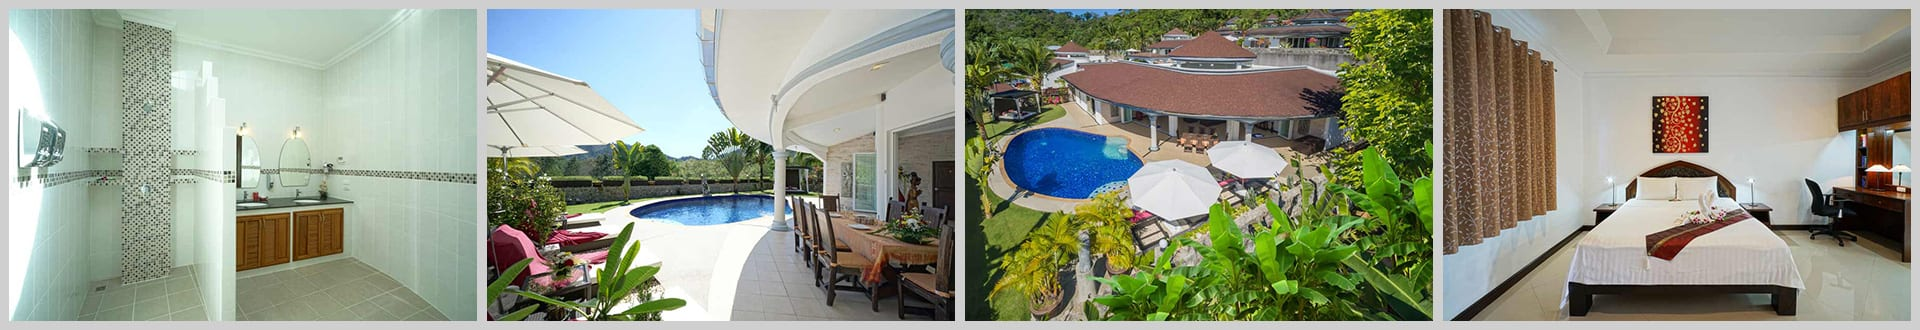 Eden Luxury Pool Villa Phuket